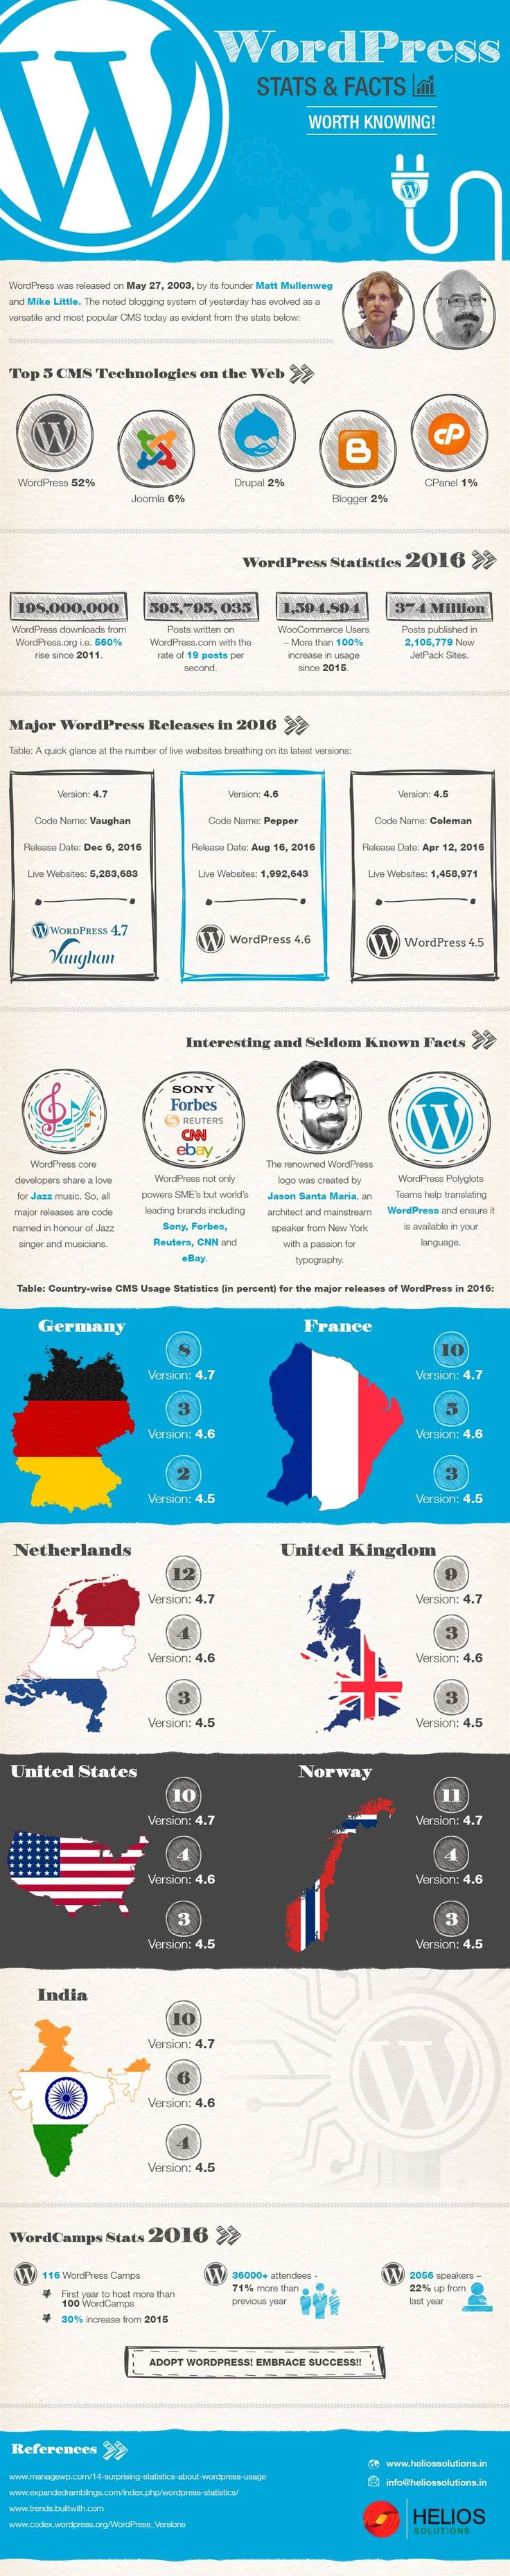 Are you a WordPress fan? Learn interesting facts about WordPress, the most convenient content management system. An infographic highlighting all about WP. #WordpressInfographic #WordpressDevelopment #FreelanceWordpress #WordpressSpecialist #OutsourcingWordpress #ContentManagenmentSystem #EngageCustomersEffectively